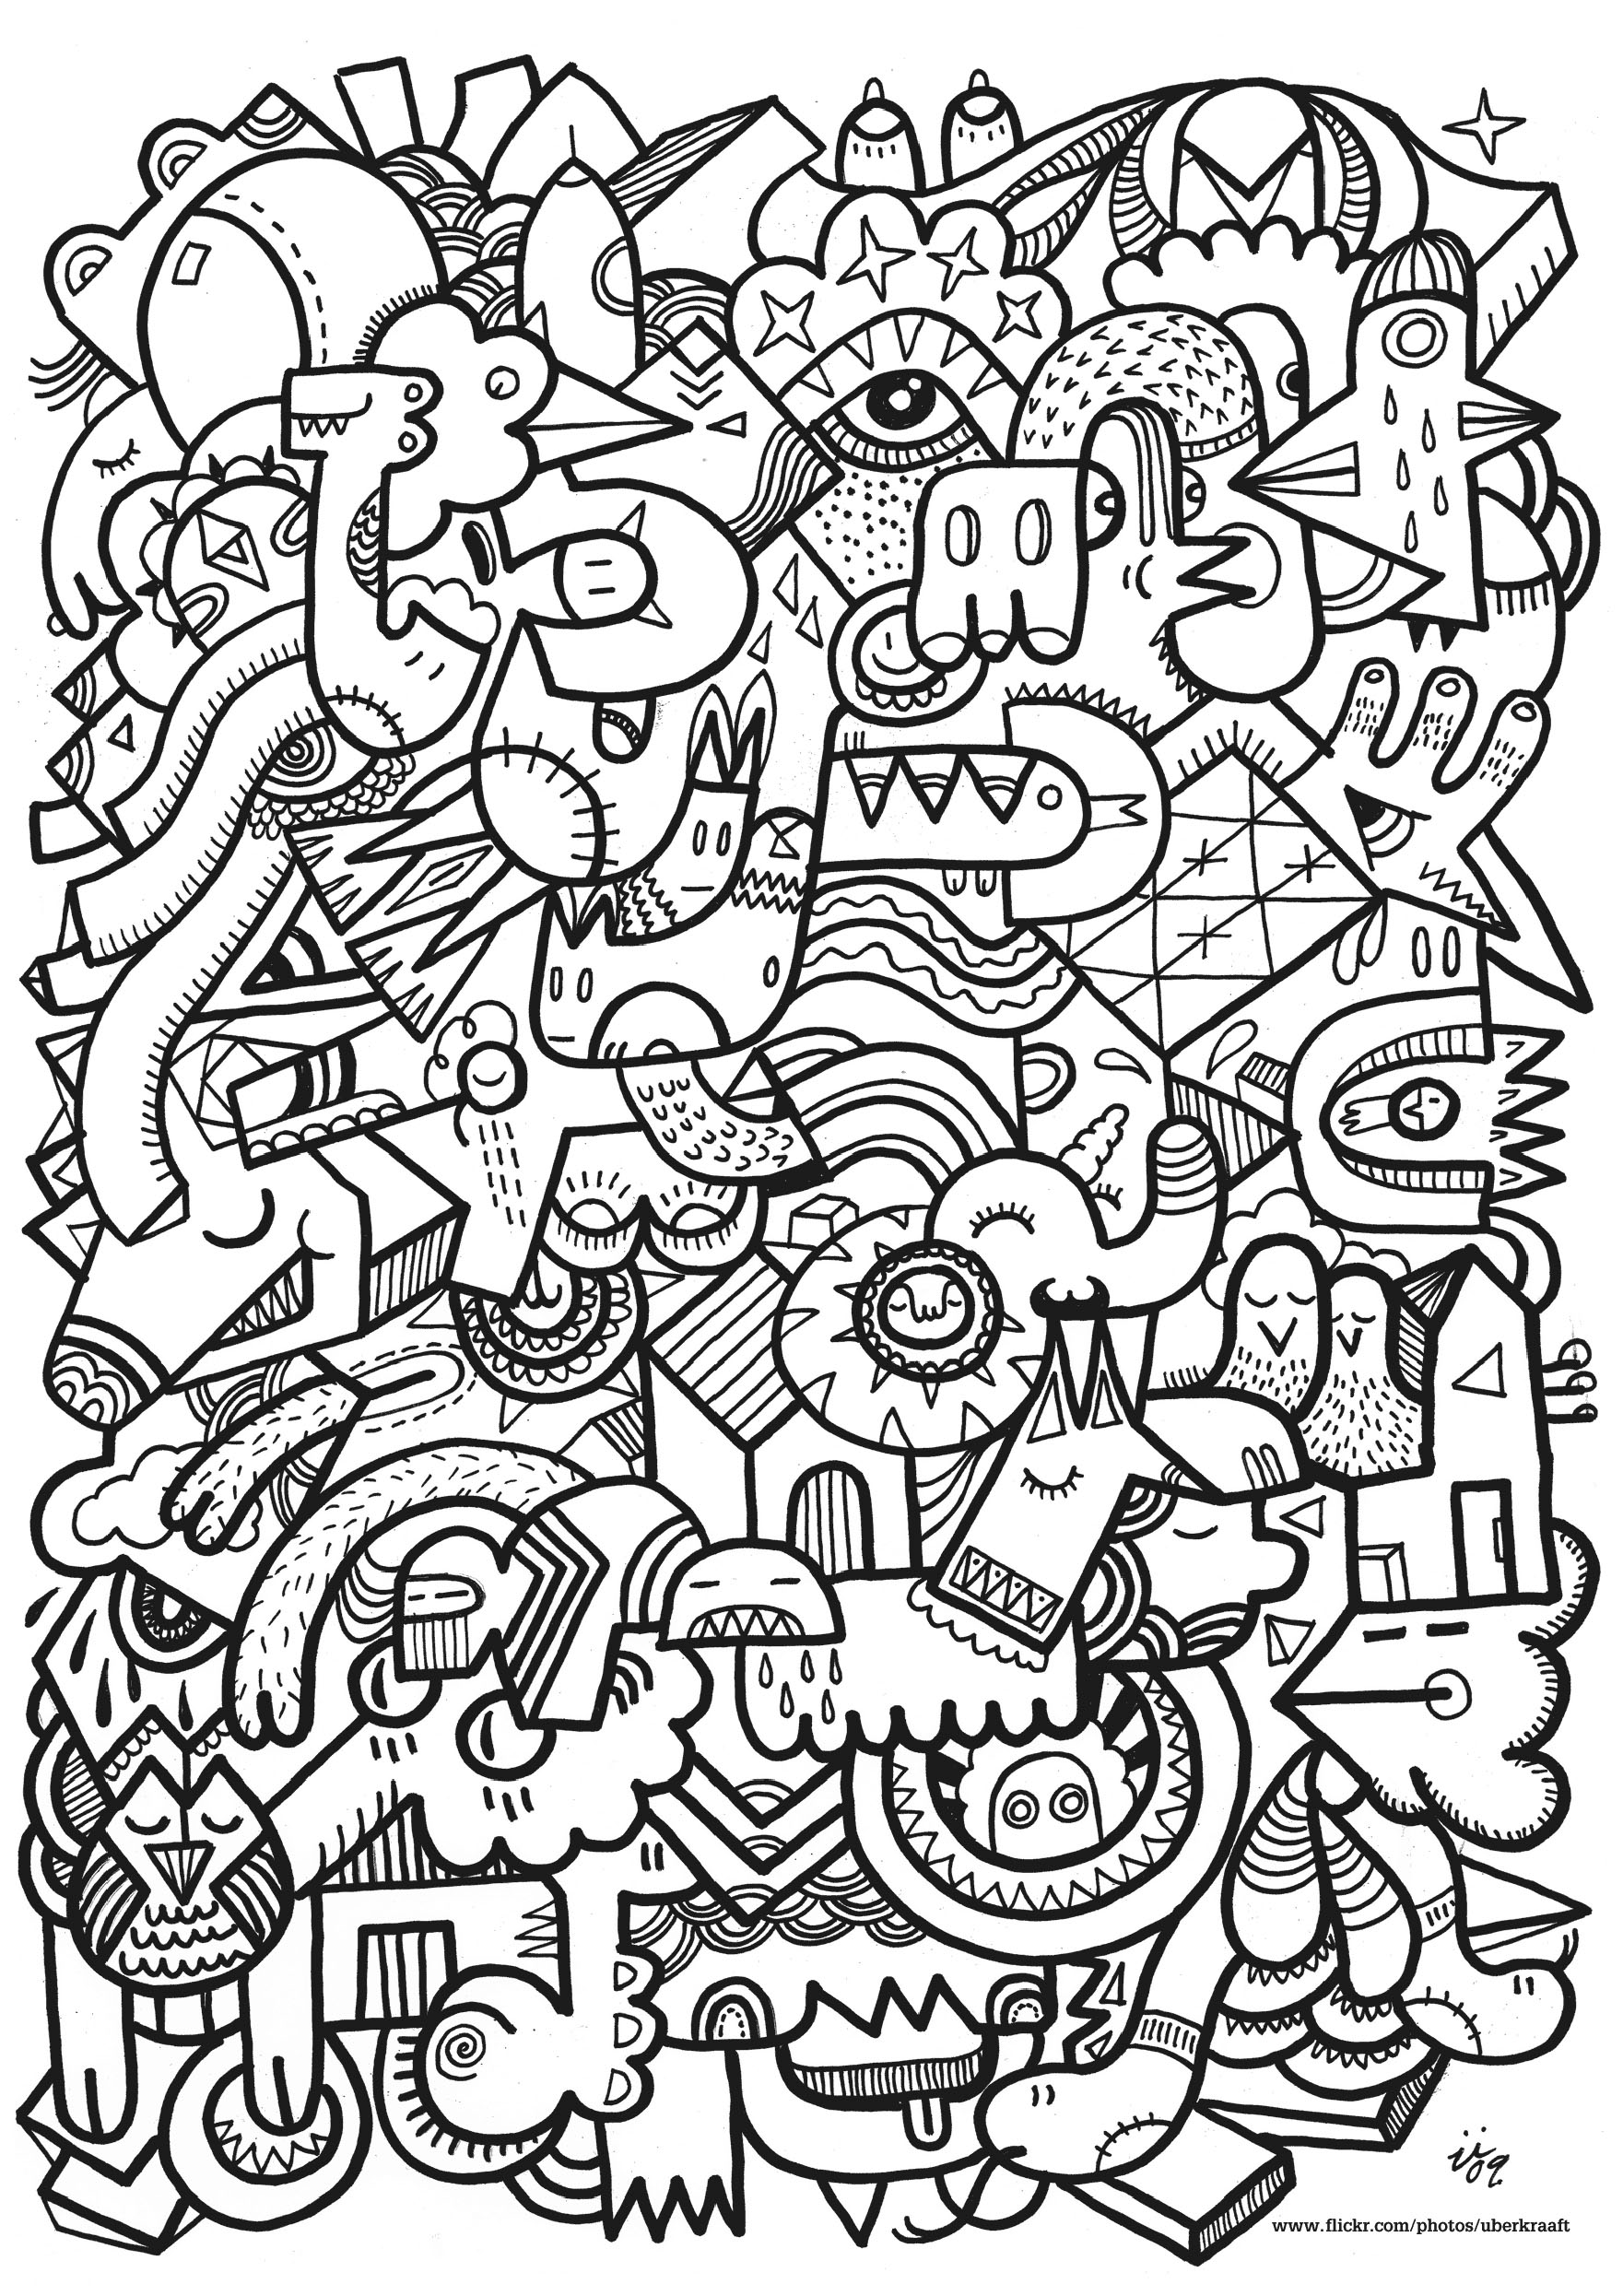 complex coloring pages online - photo#12